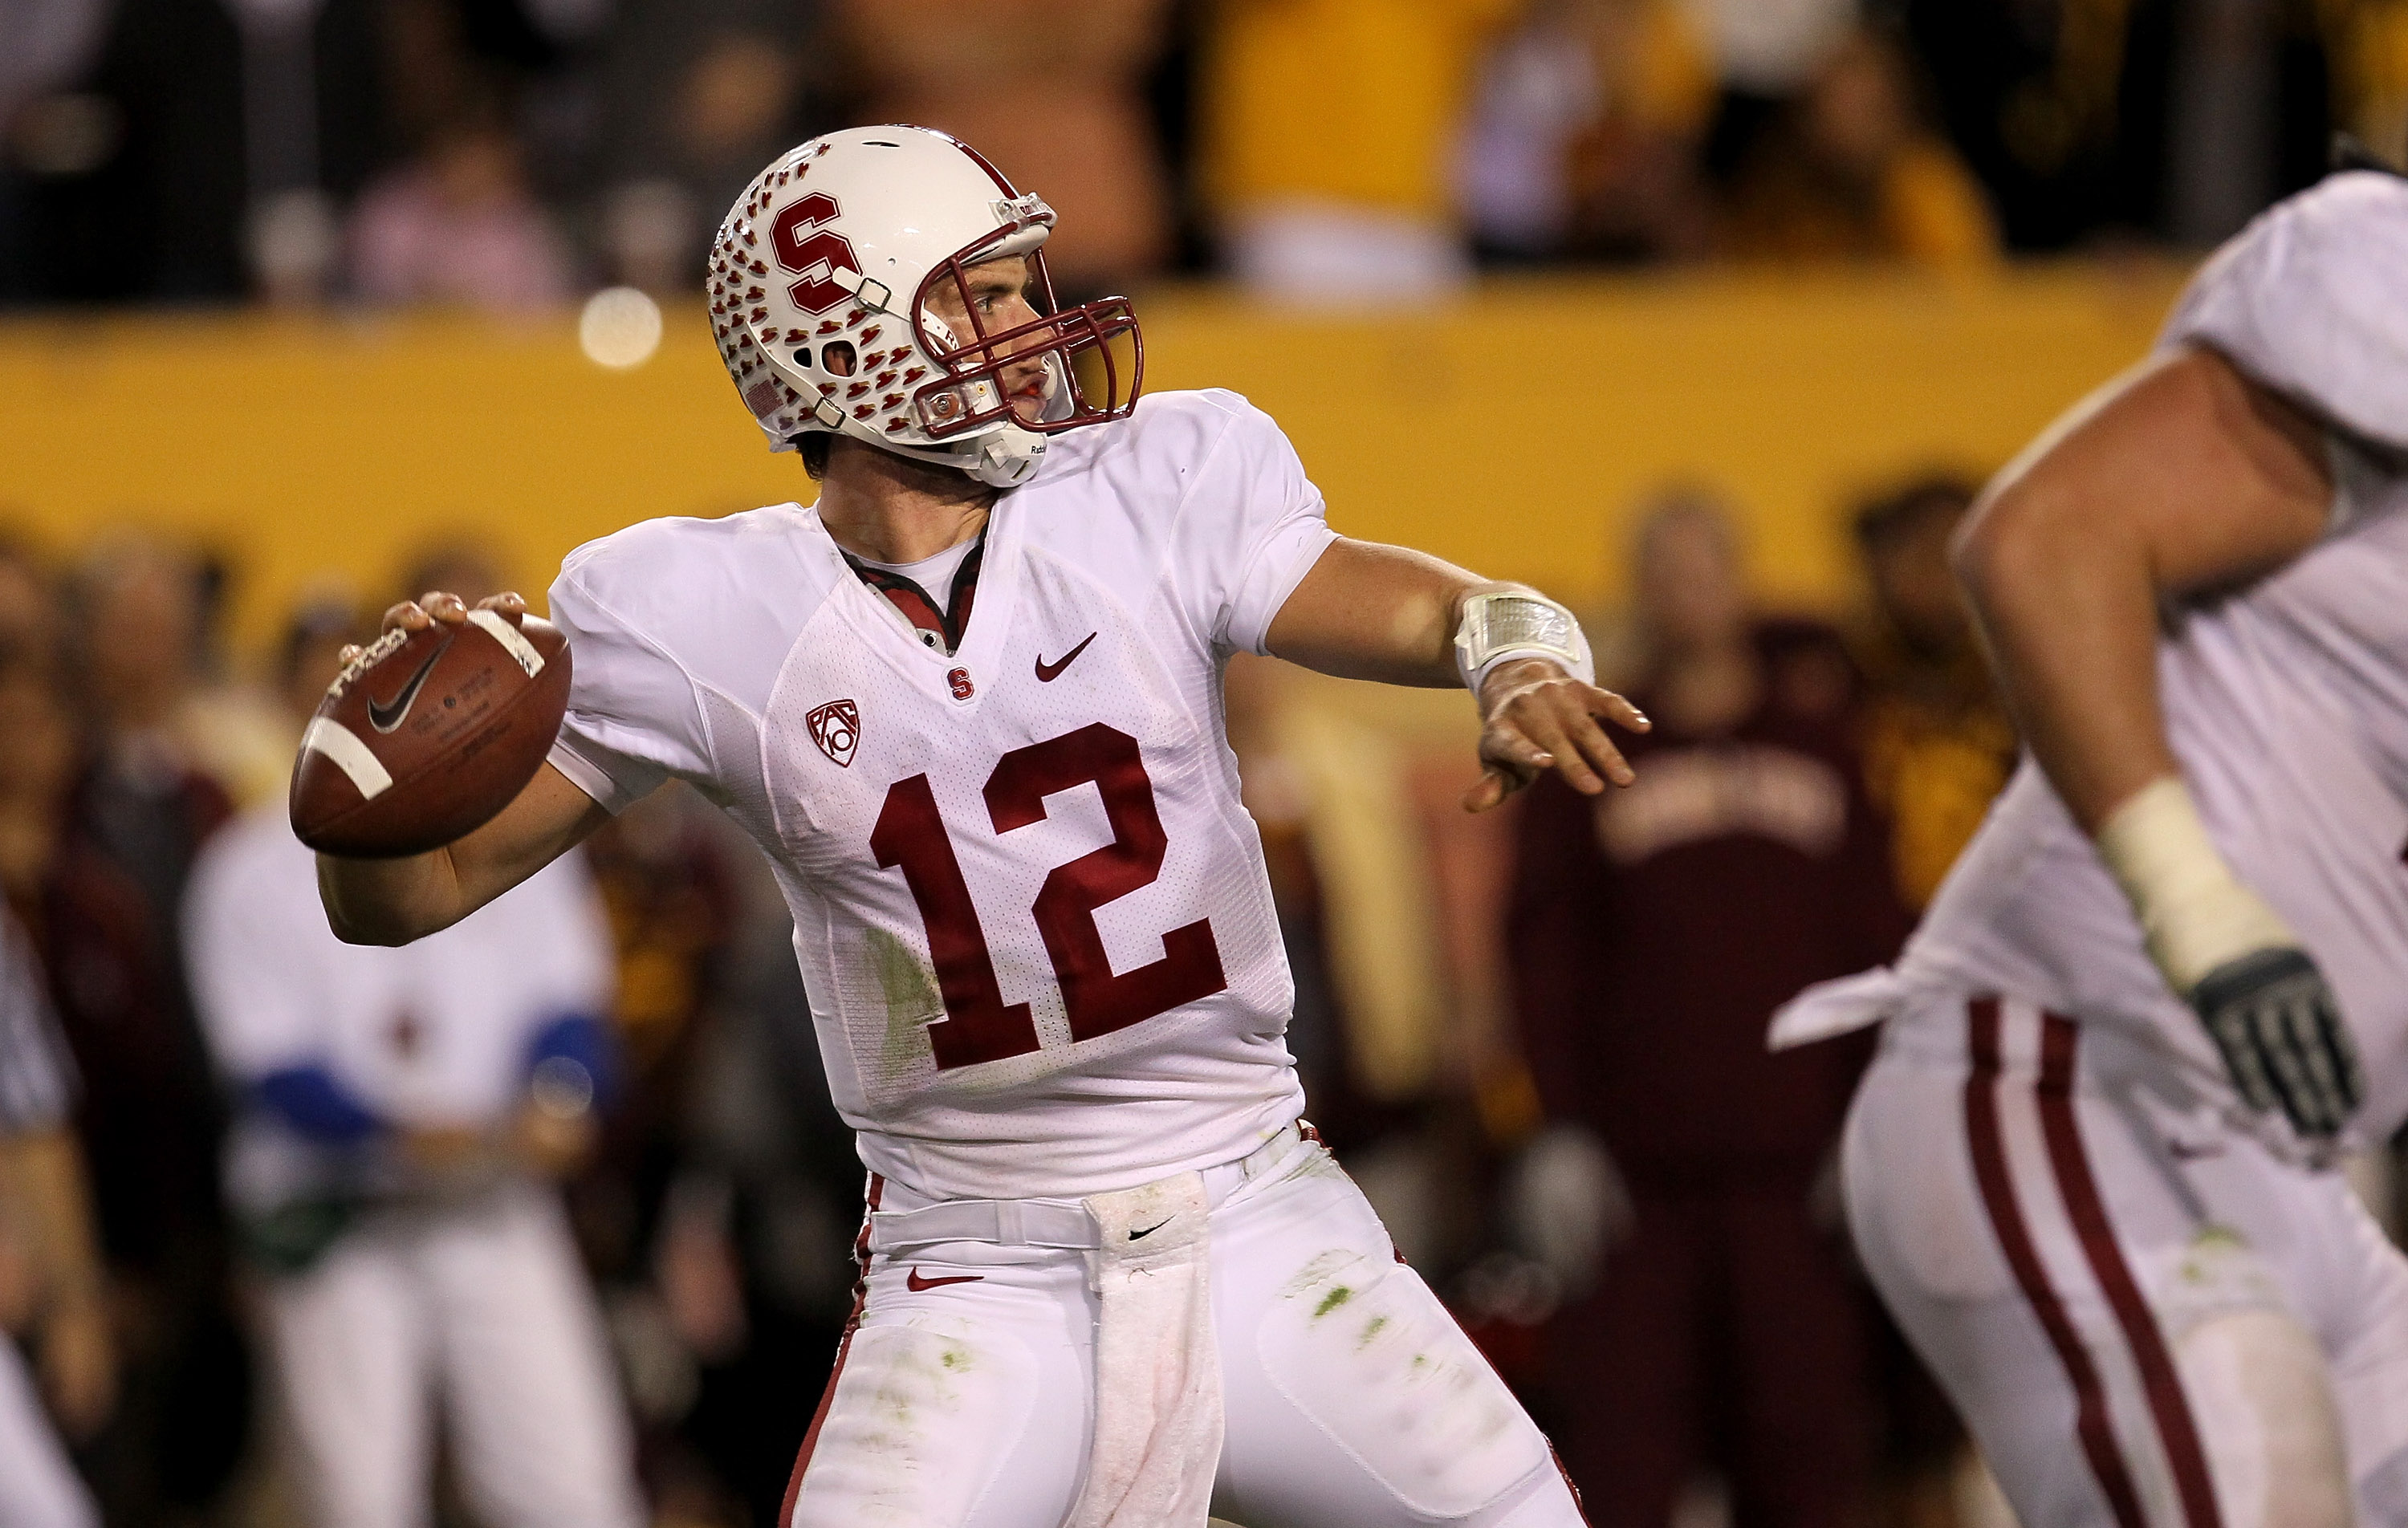 TEMPE, AZ - NOVEMBER 13:  Quarterback Andrew Luck #12 of the Stanford Cardinal throws a pass against the Arizona State Sun Devils at Sun Devil Stadium on November 13, 2010 in Tempe, Arizona.The Cardinal won 17-13.  (Photo by Stephen Dunn/Getty Images)